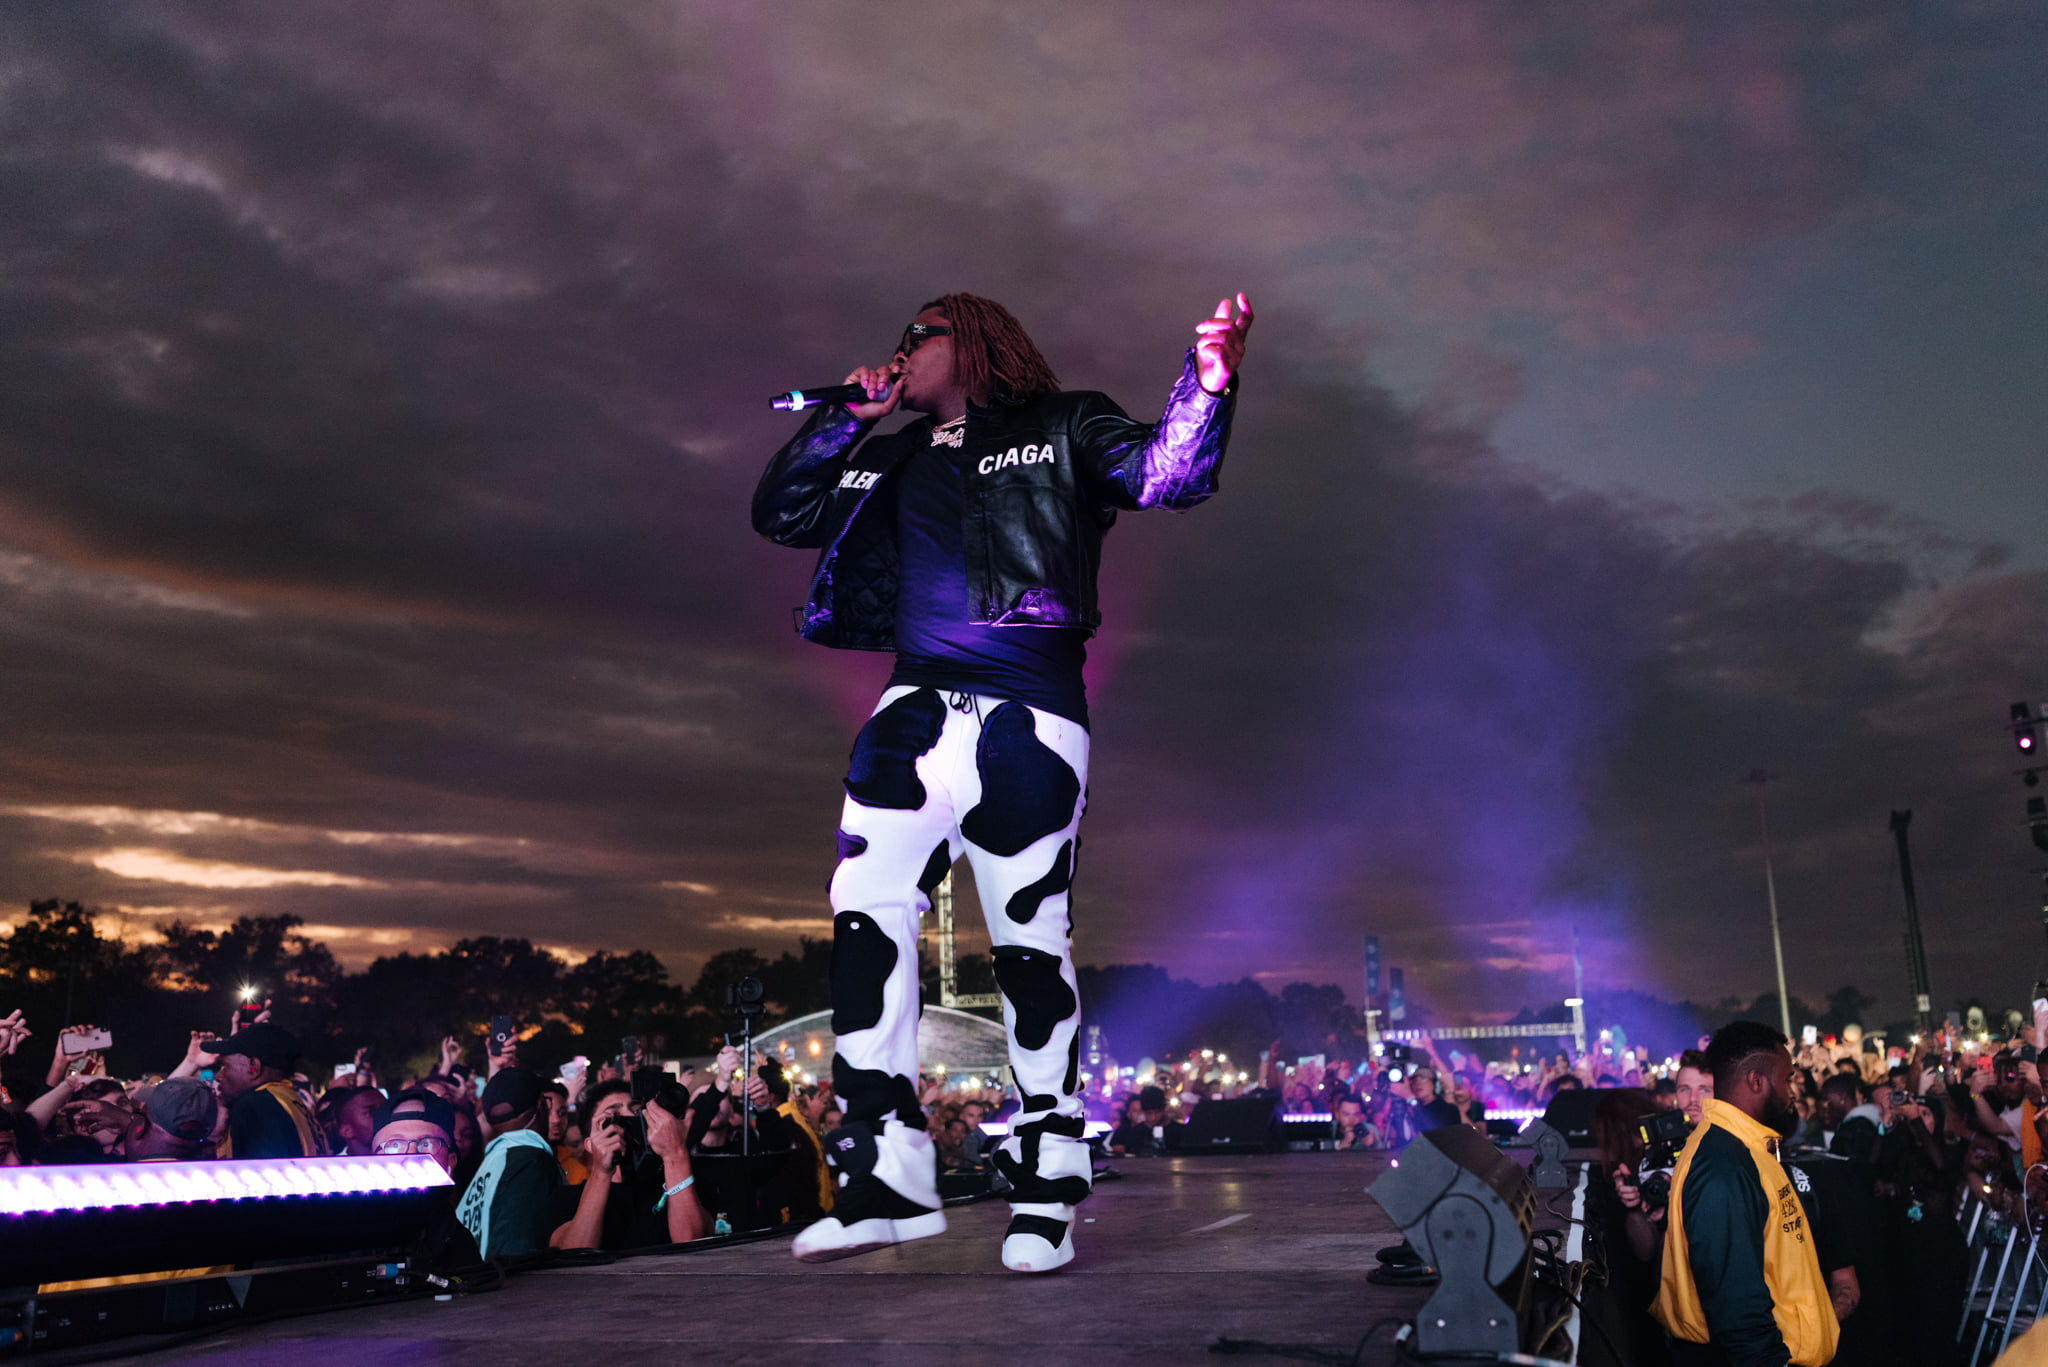 72767023 712878059216944 4911494209069907968 n 1 Sergio Kitchens known professionally as Gunna is an American rapper, singer, and songwriter